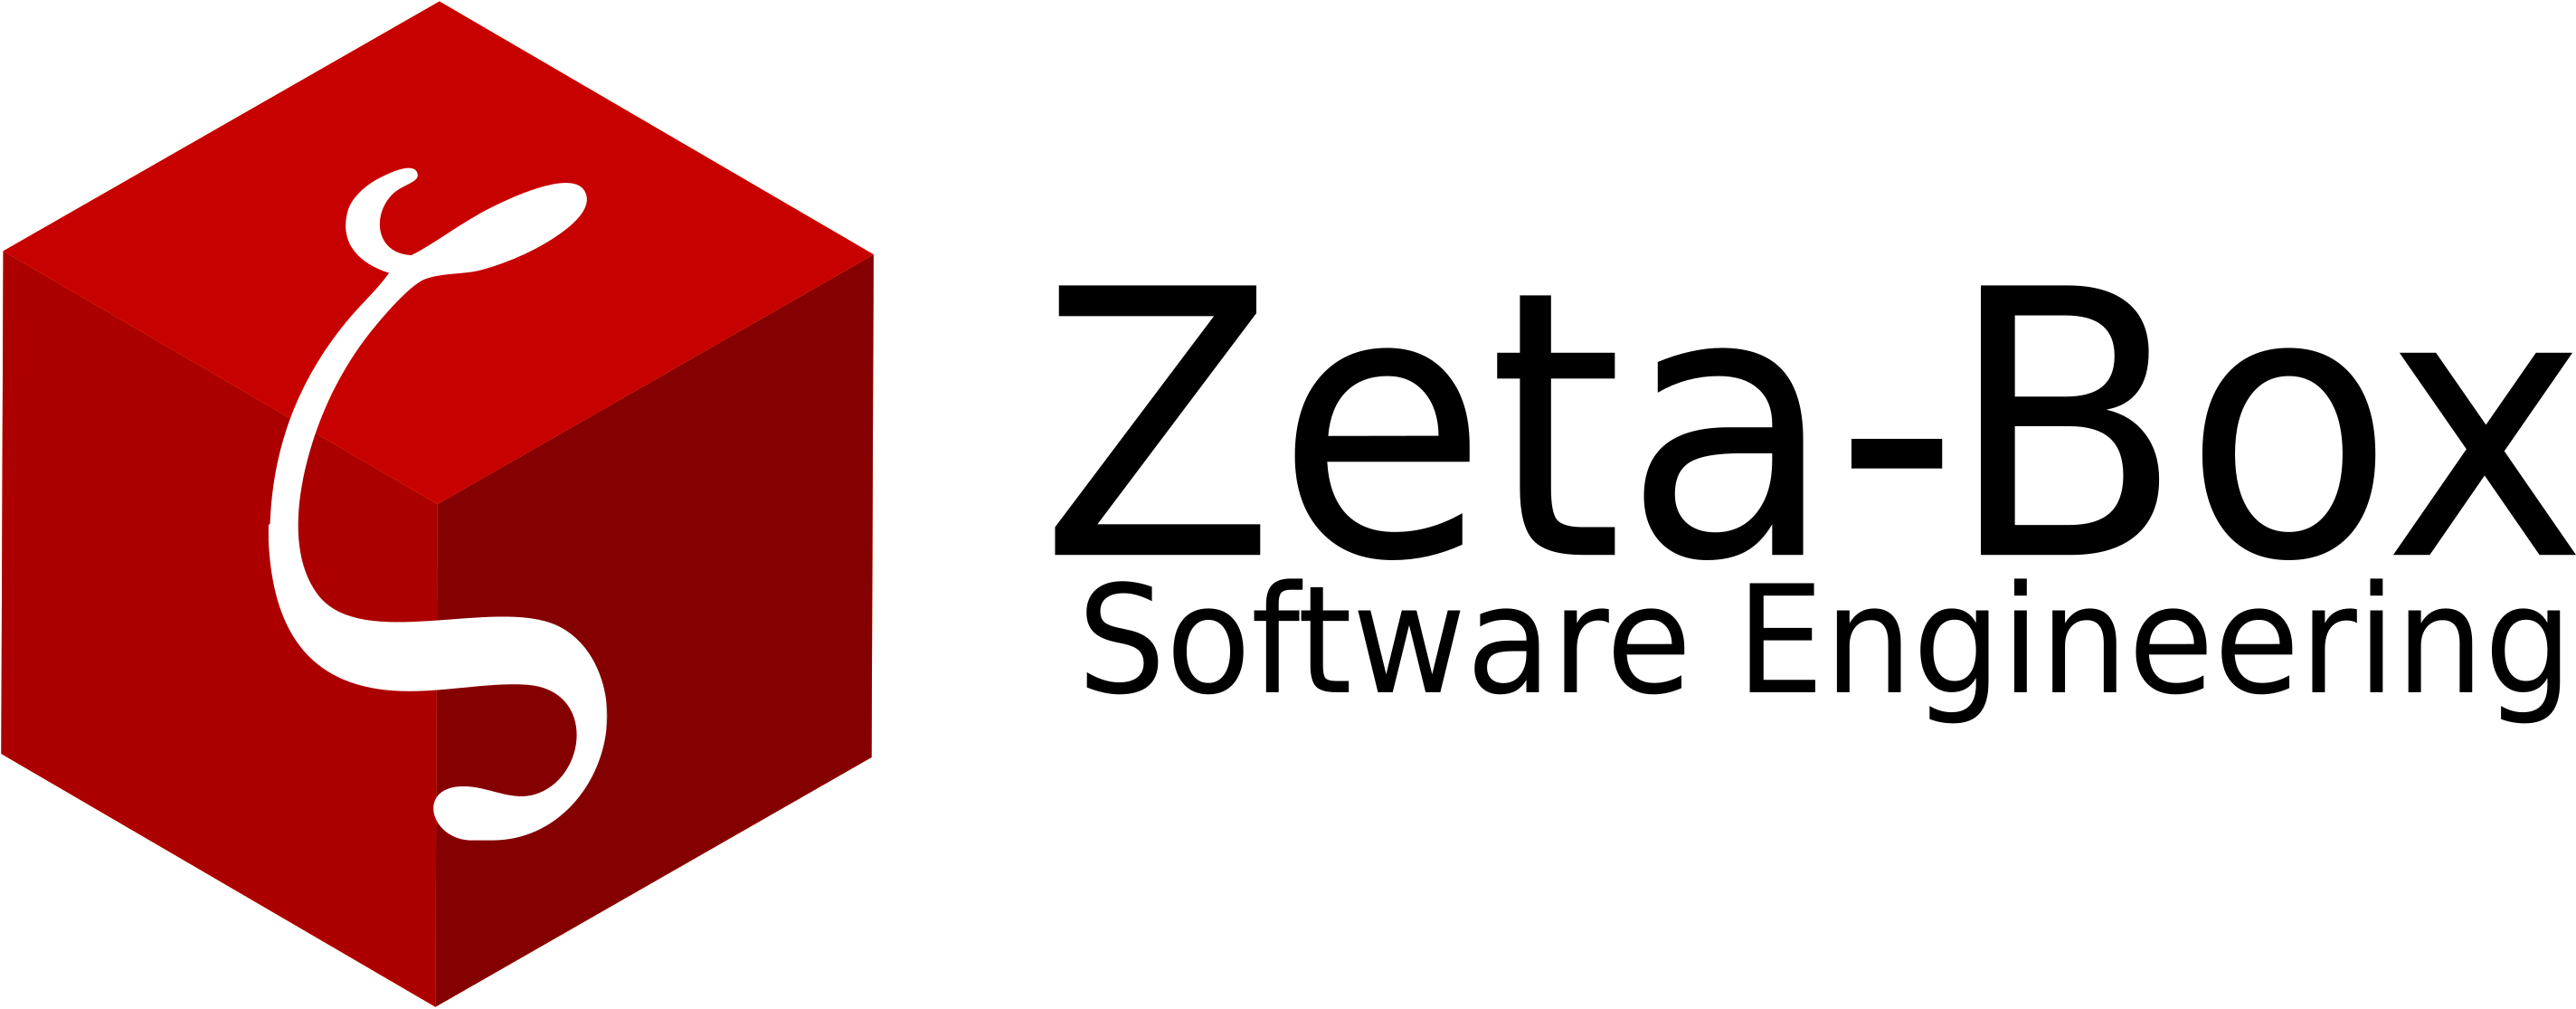 ZETA-BOX SOFTWARE ENGINEERING